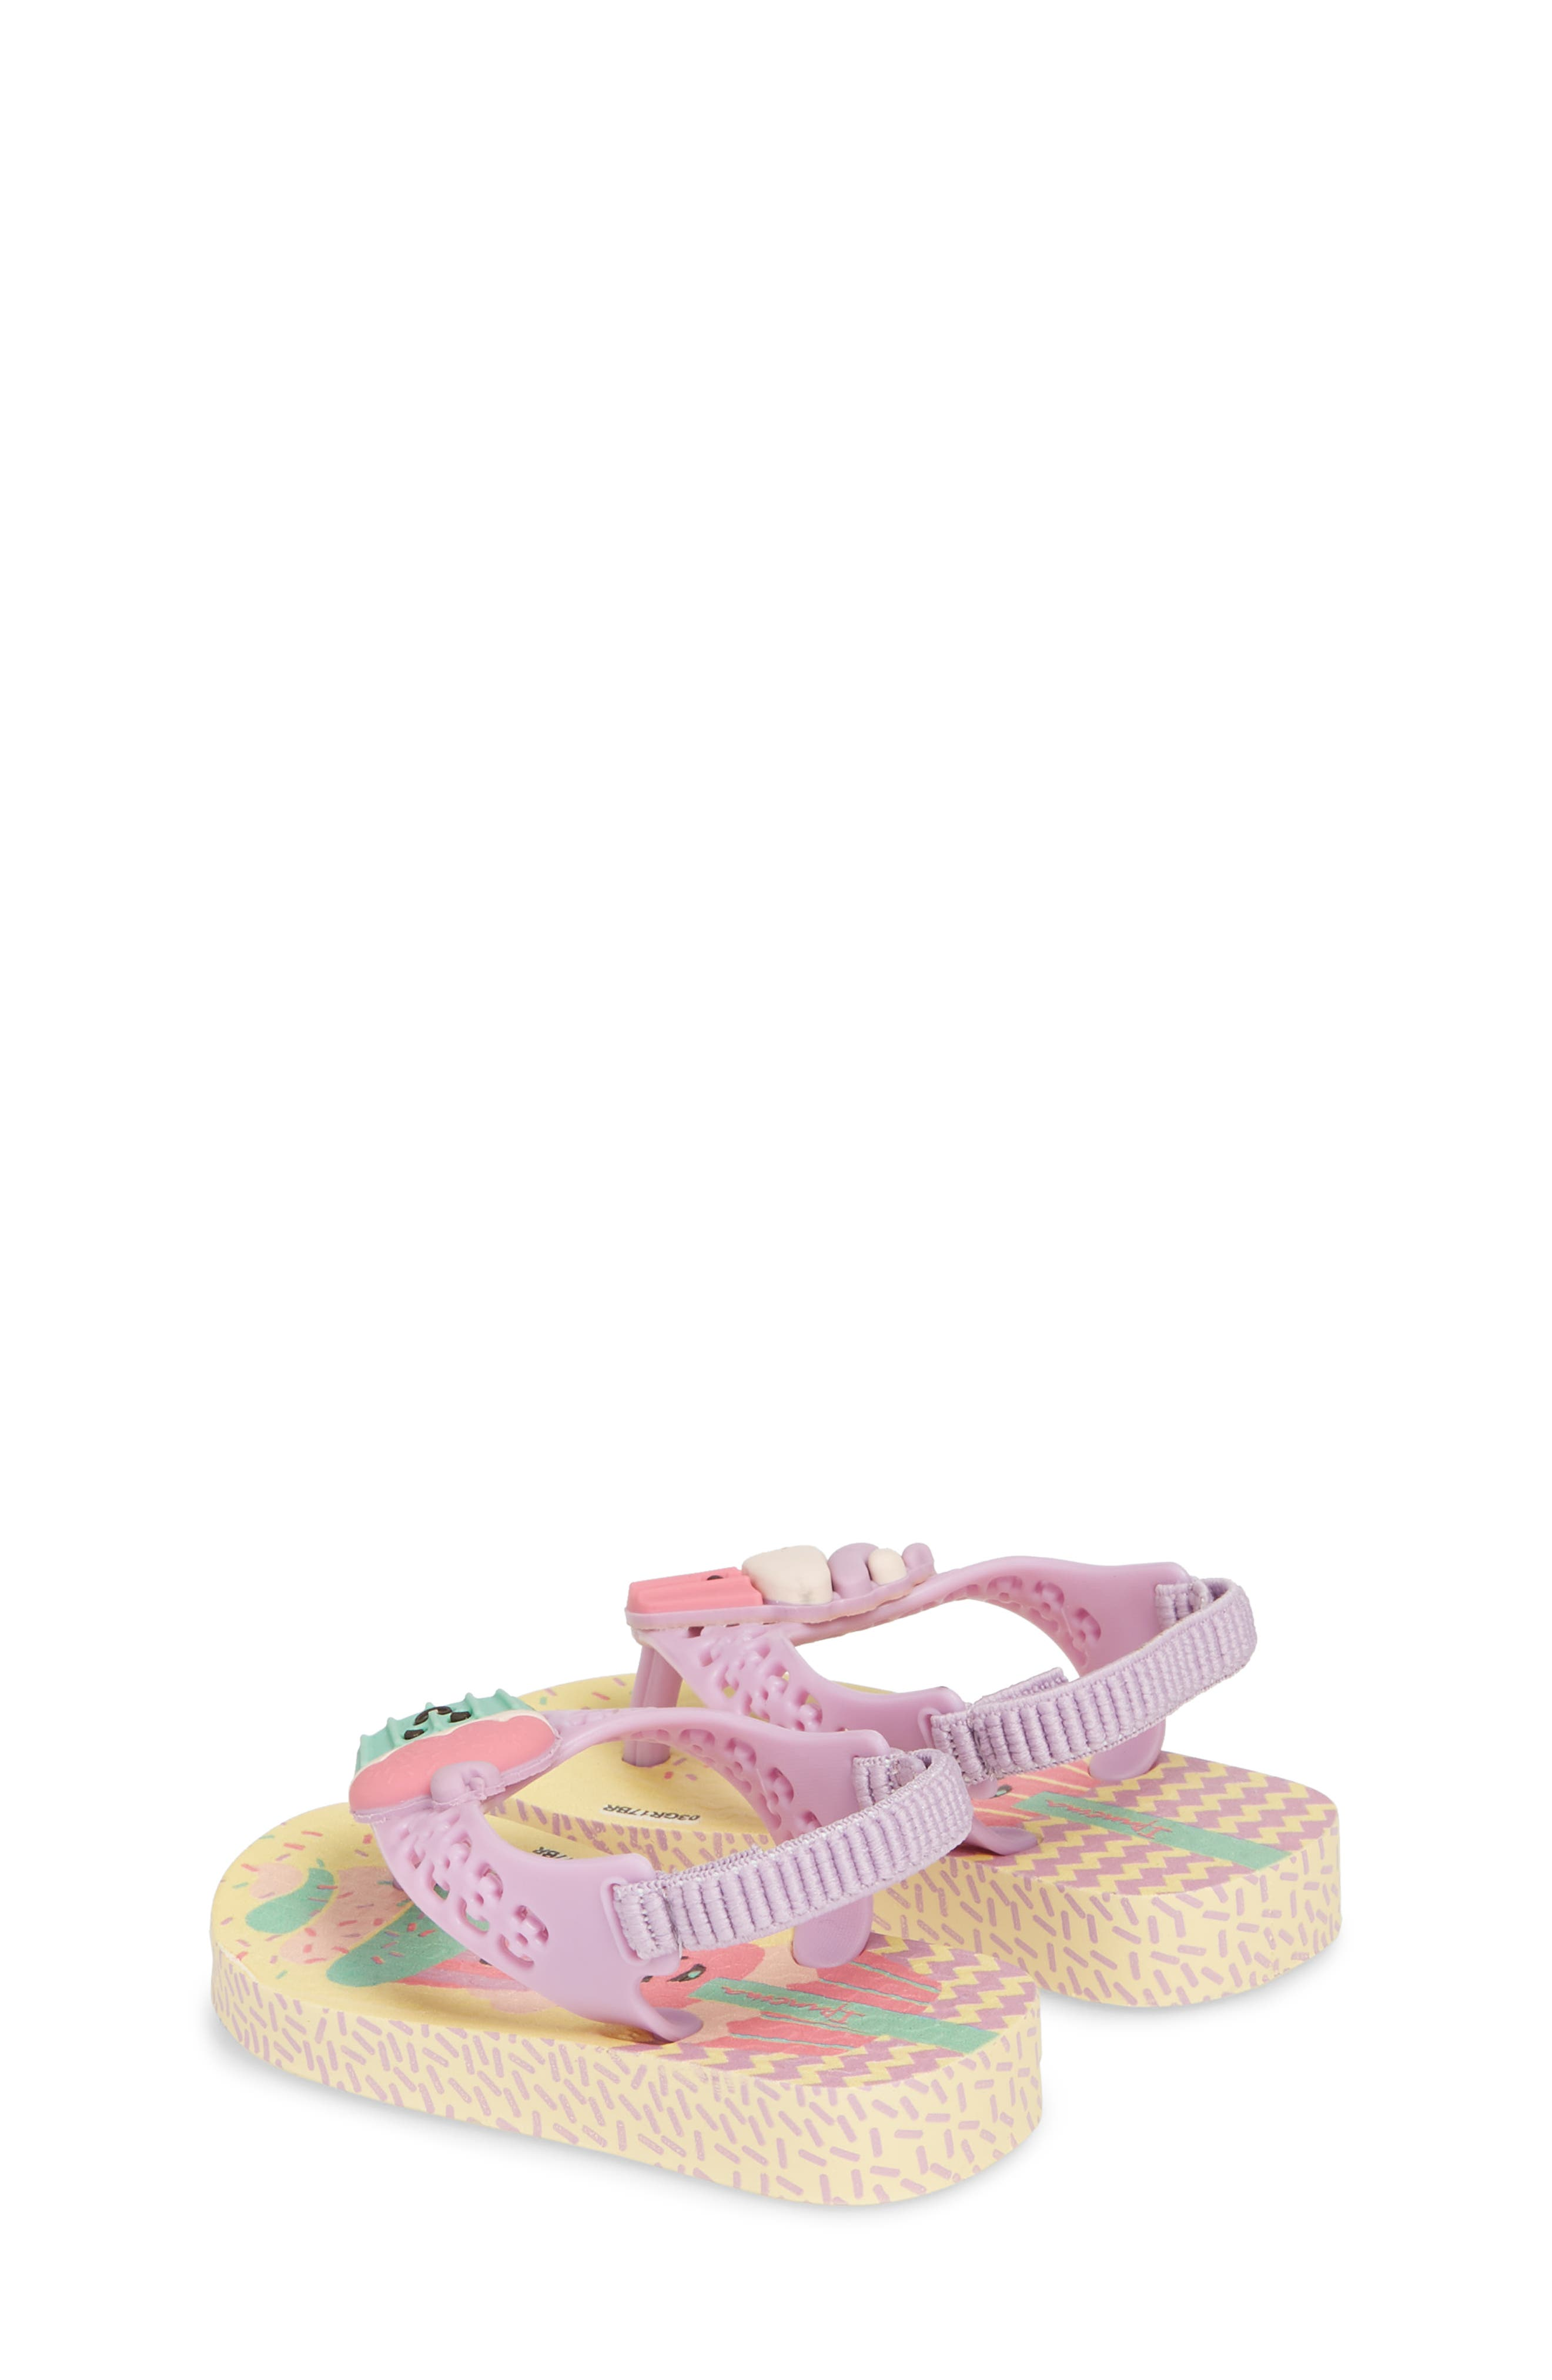 Fun Baby Flip Flop,                             Alternate thumbnail 2, color,                             Yellow/ Lilac